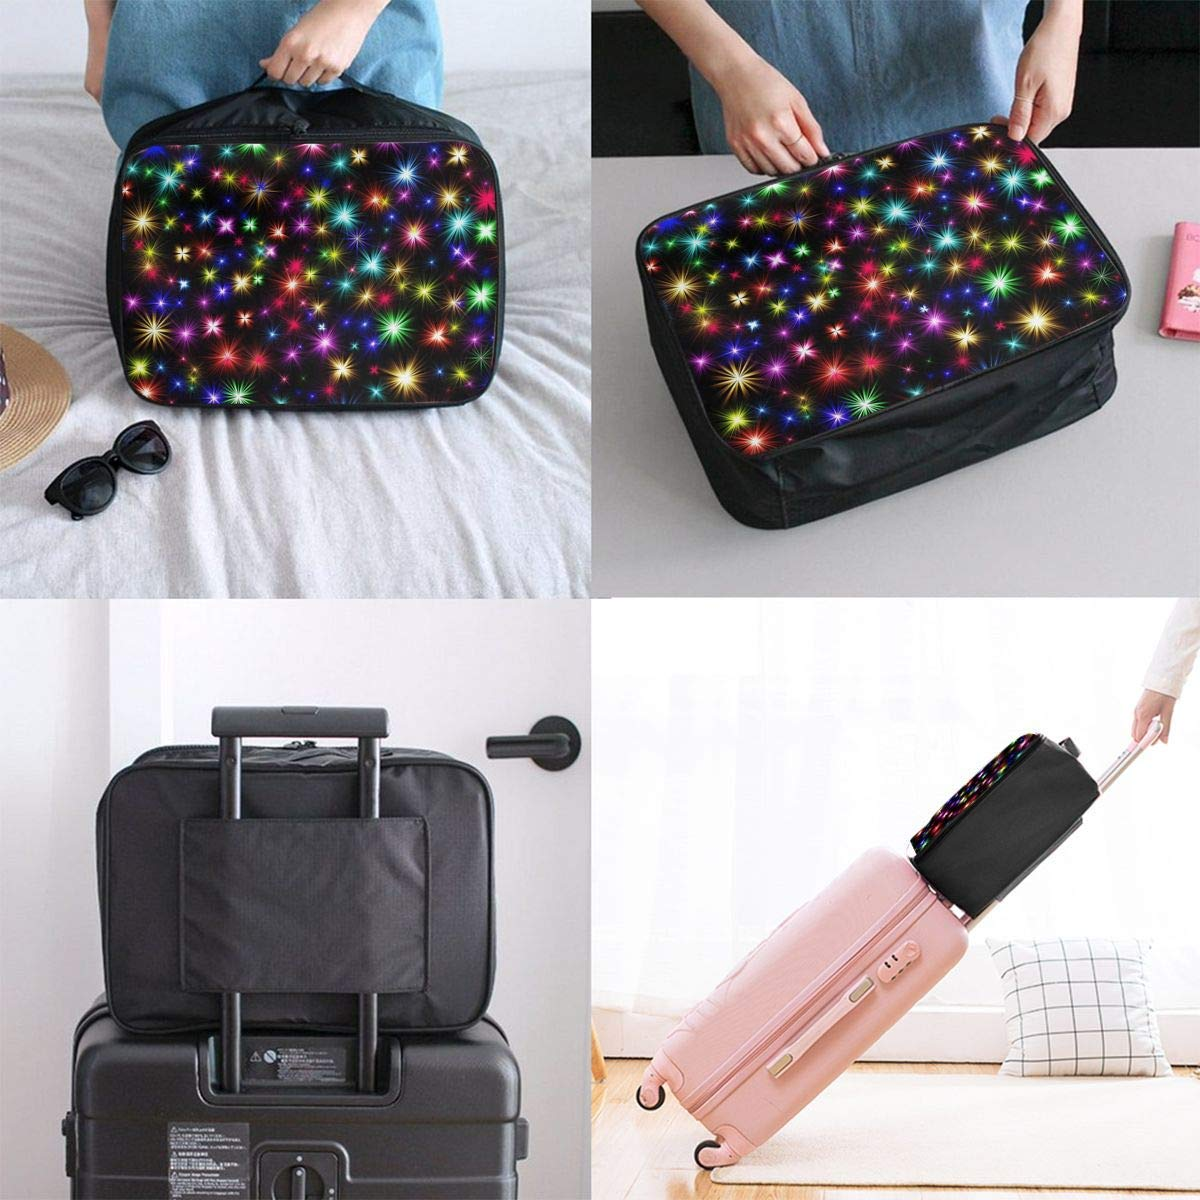 JTRVW Luggage Bags for Travel Travel Lightweight Waterproof Foldable Storage Carry Luggage Duffle Tote Bag Colorful Tie Dye Watercolor Art